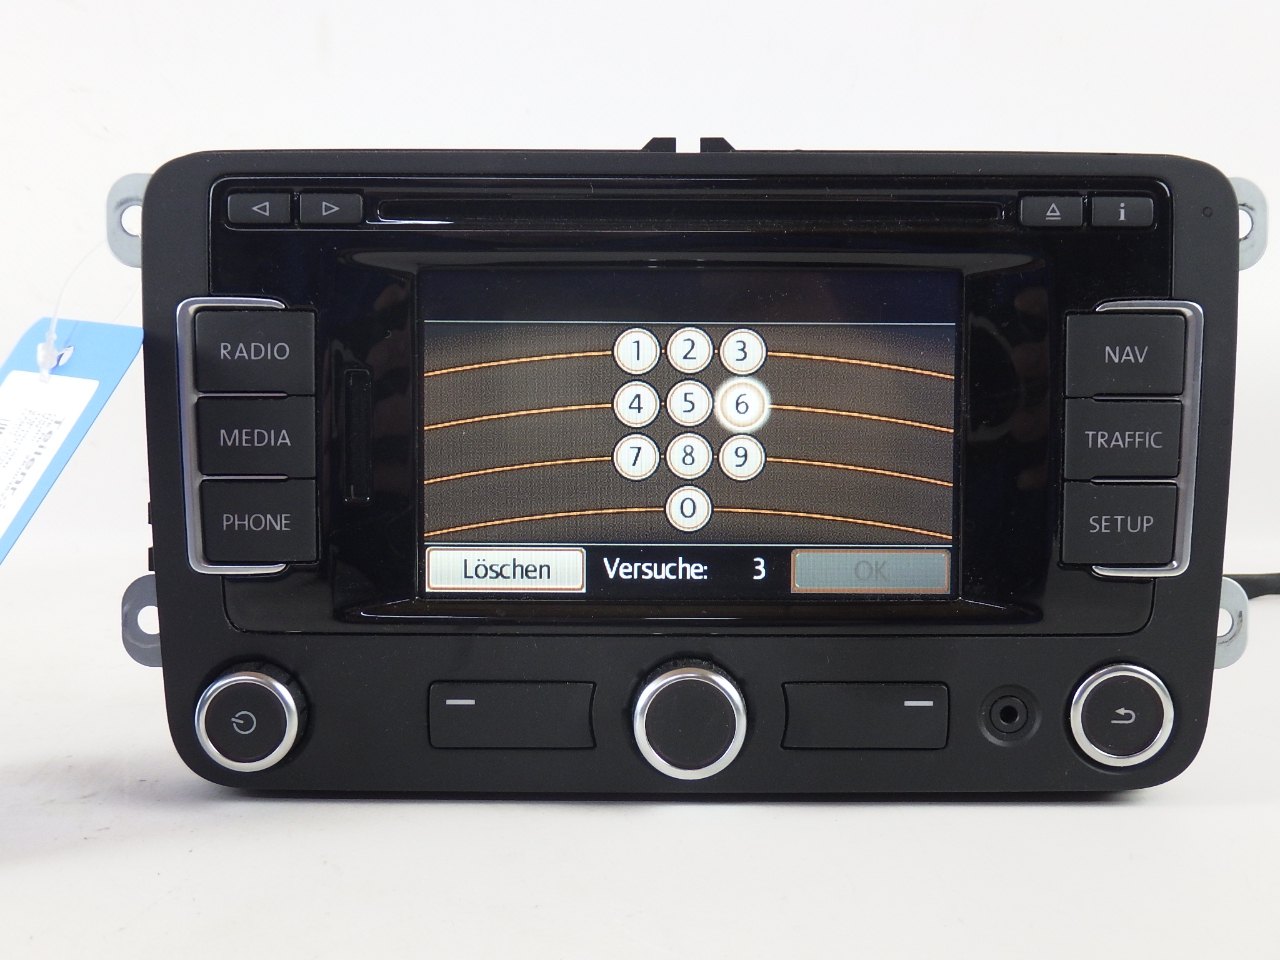 2k0035279b satnav navigation system rns 315 vw tiguan 5n ebay. Black Bedroom Furniture Sets. Home Design Ideas